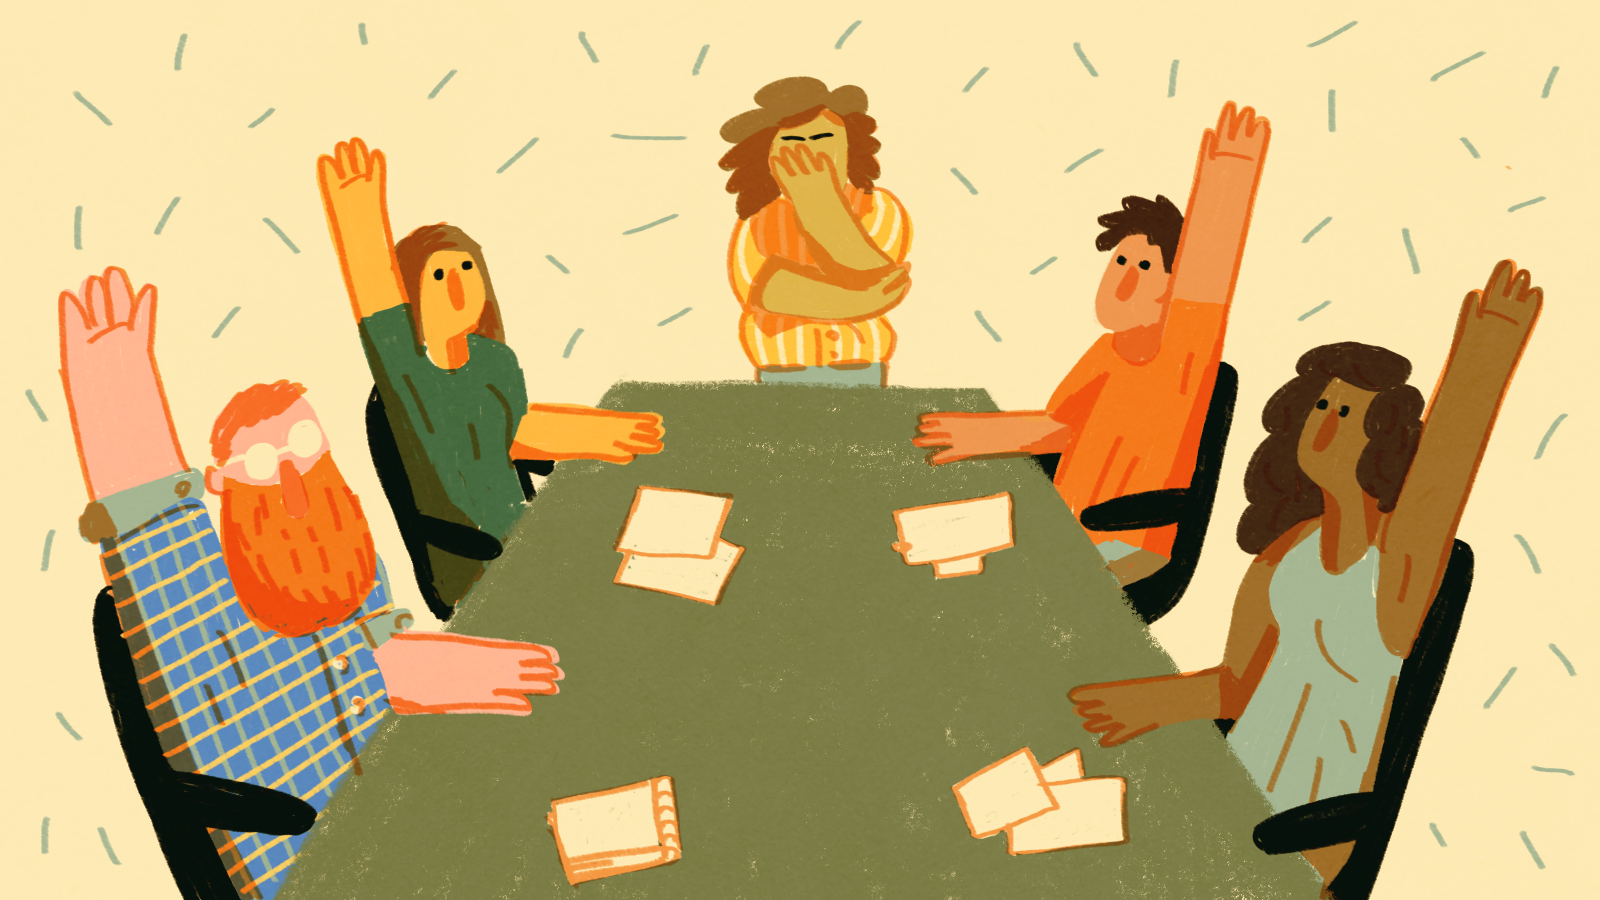 A group of people at a conference table, raising their hands while a frustrated leader palms their face.